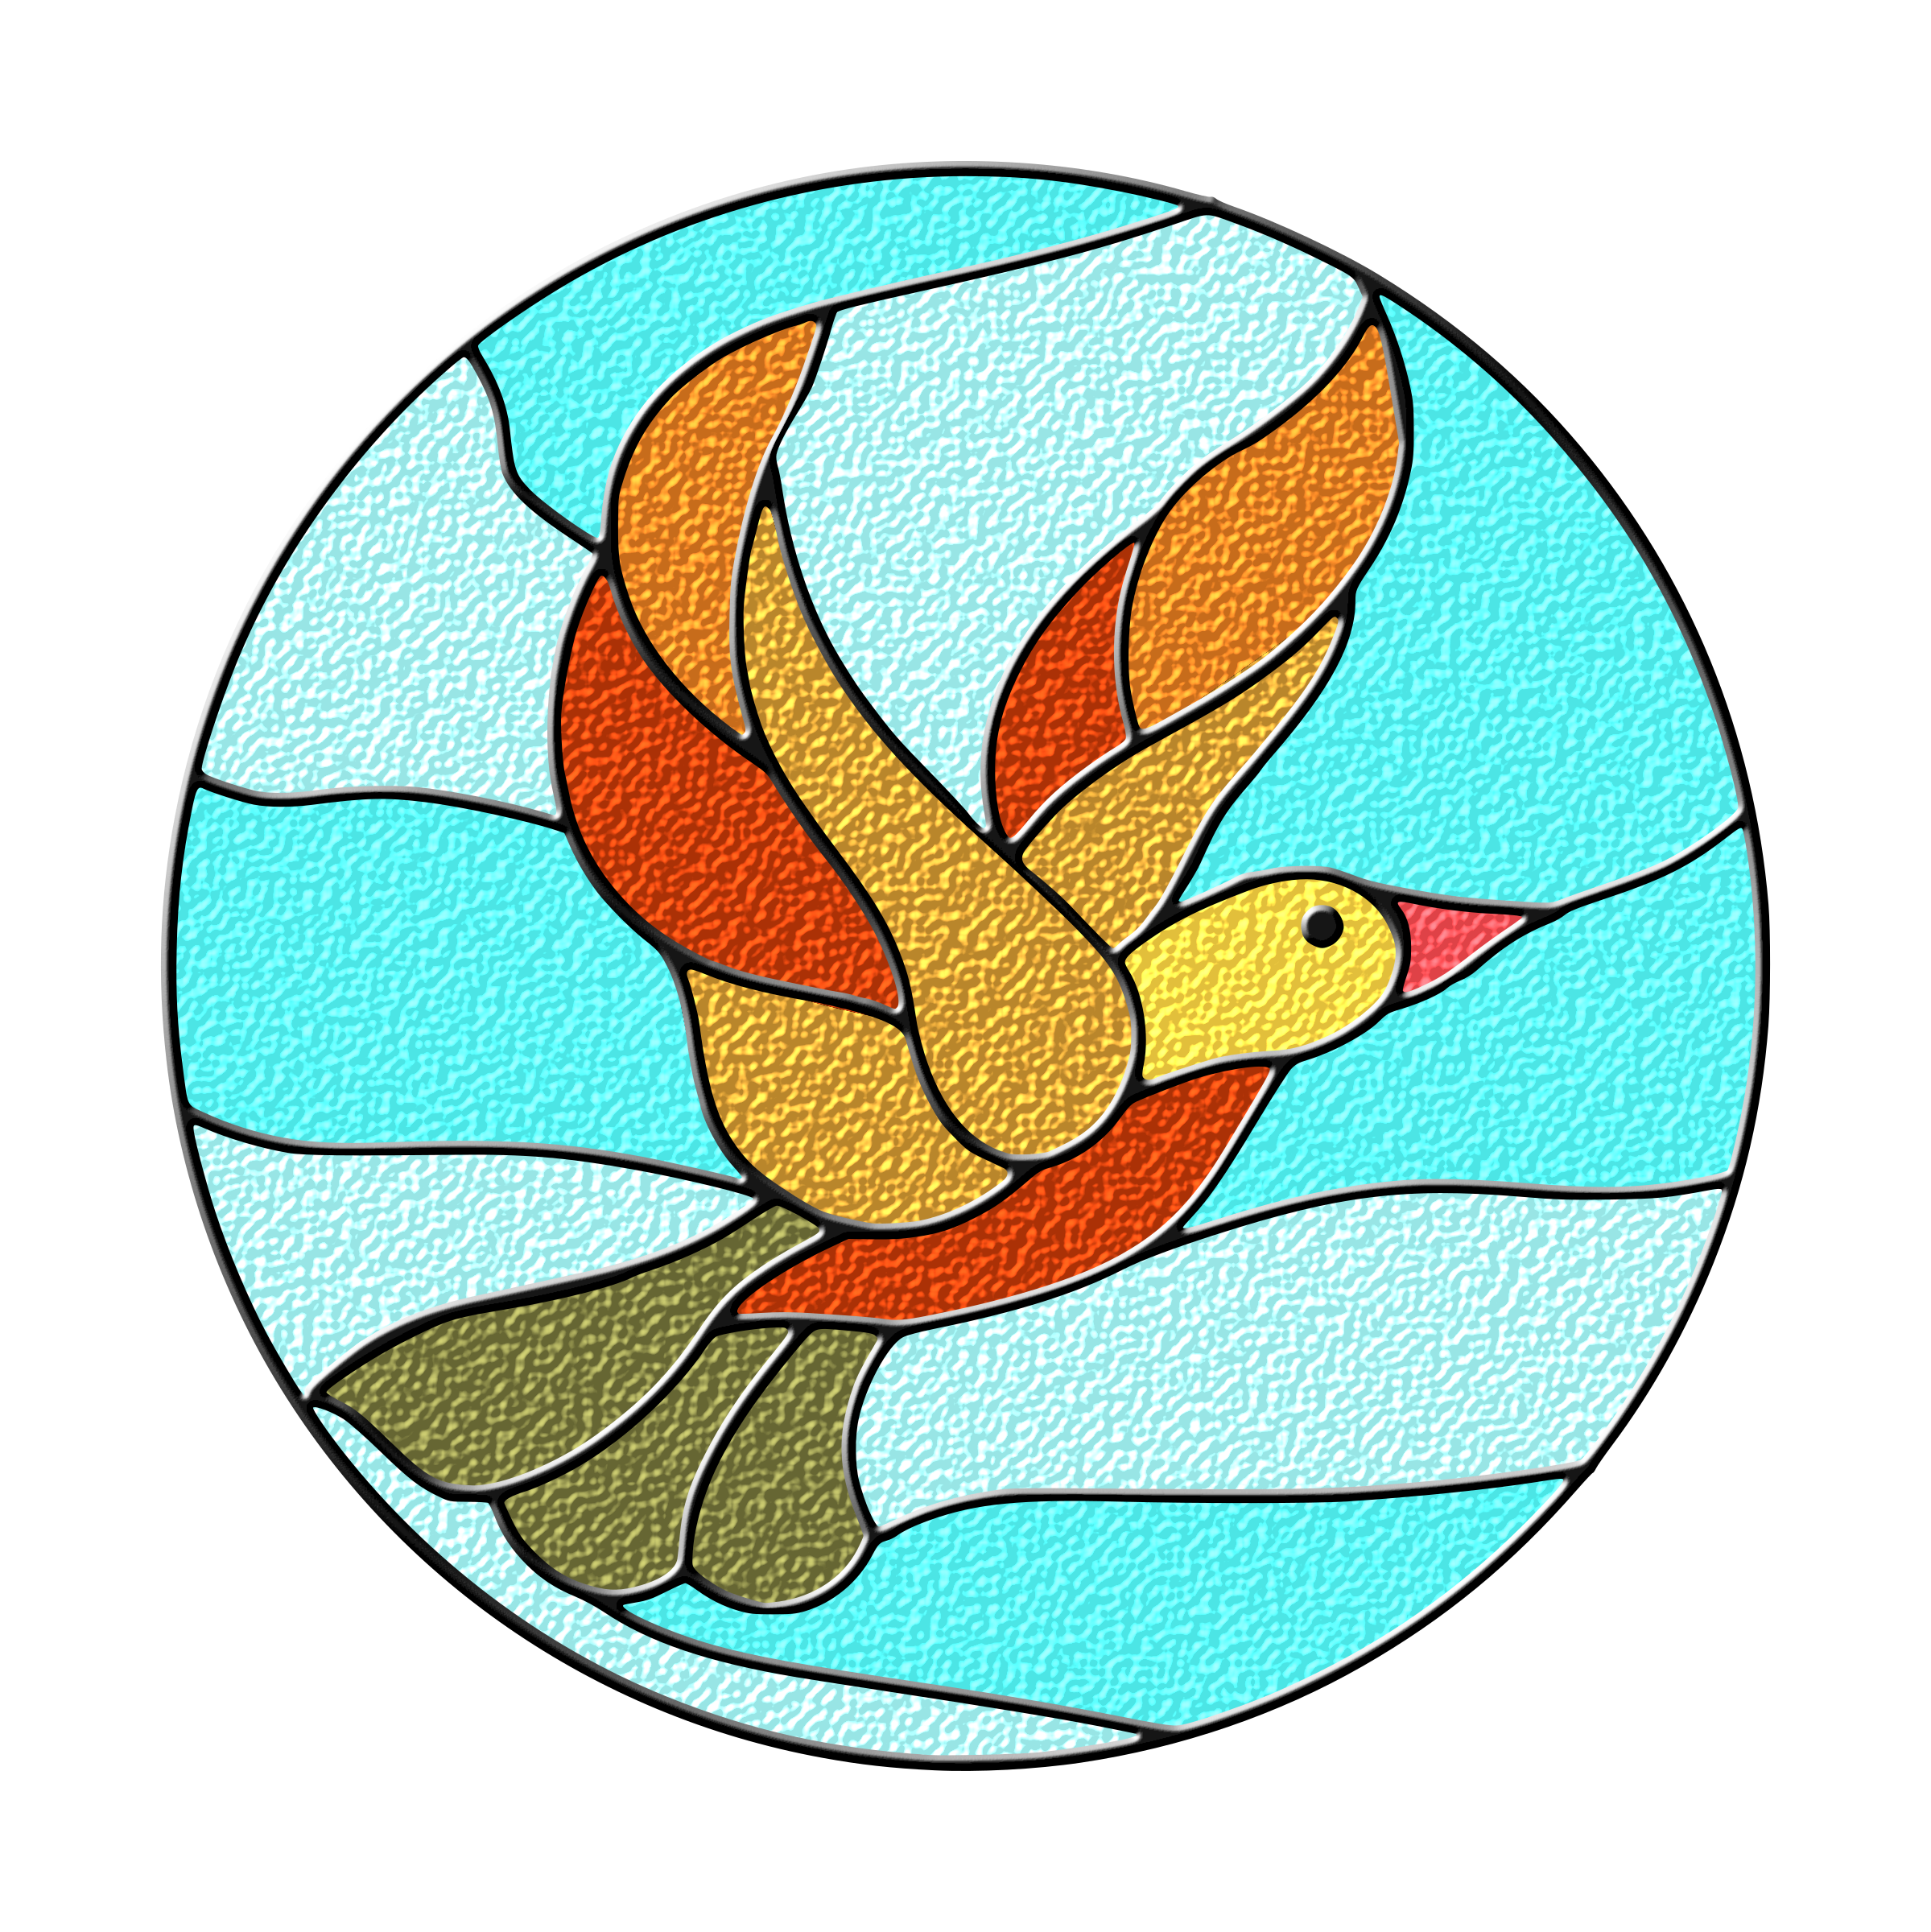 Bird Stained Glass by gustavorezende